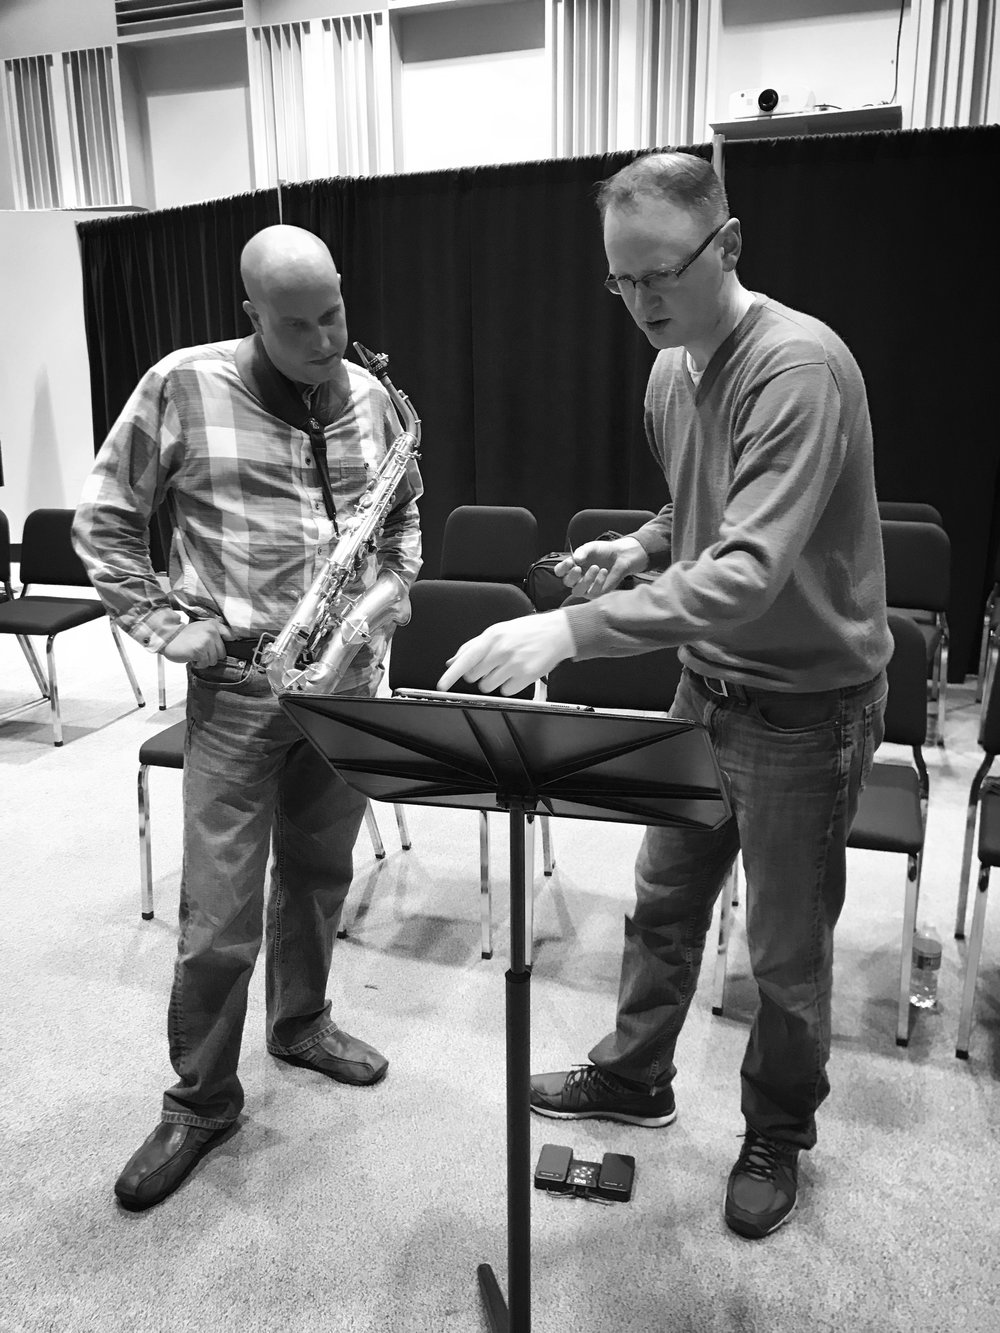 RSO performers Marc Ballard and Chris Condon examining the details of a composition